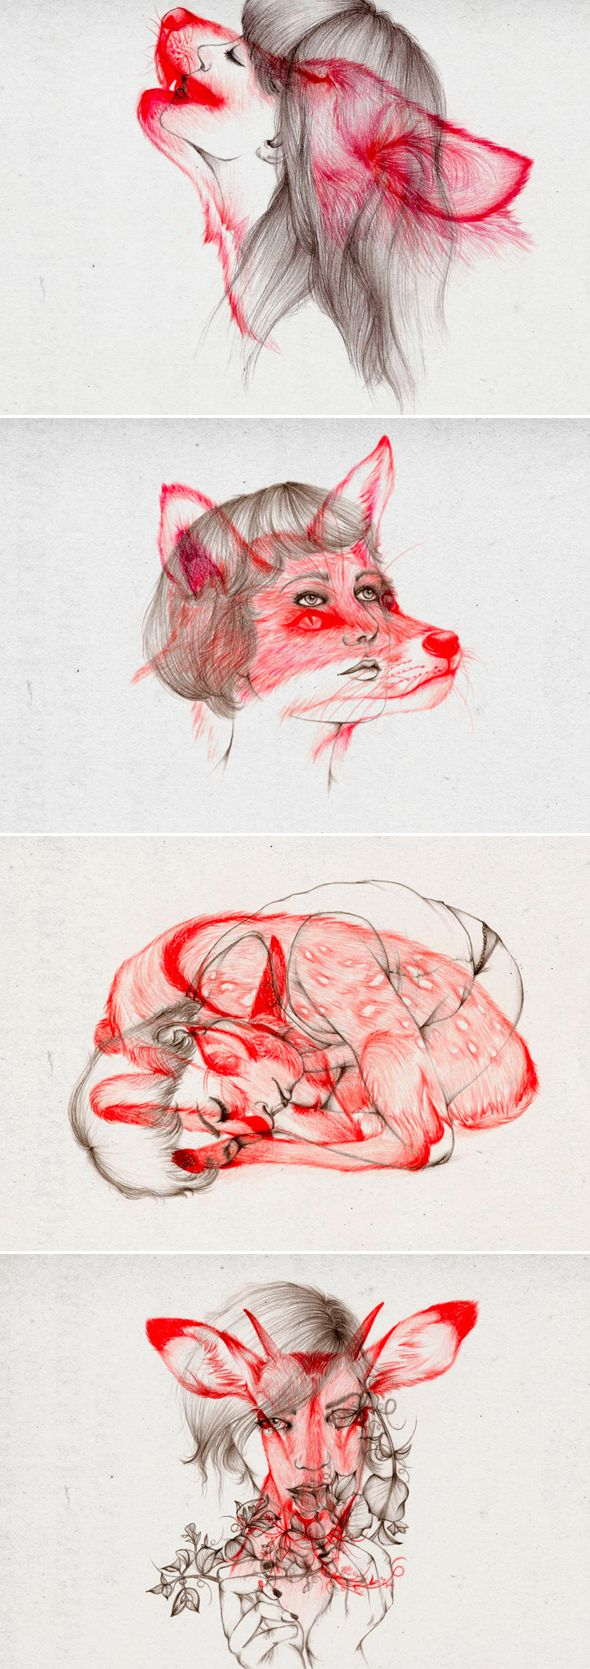 Girl drawings with woodland creatures overlaid    Illustrations-par-Peony-Yip-2 George B